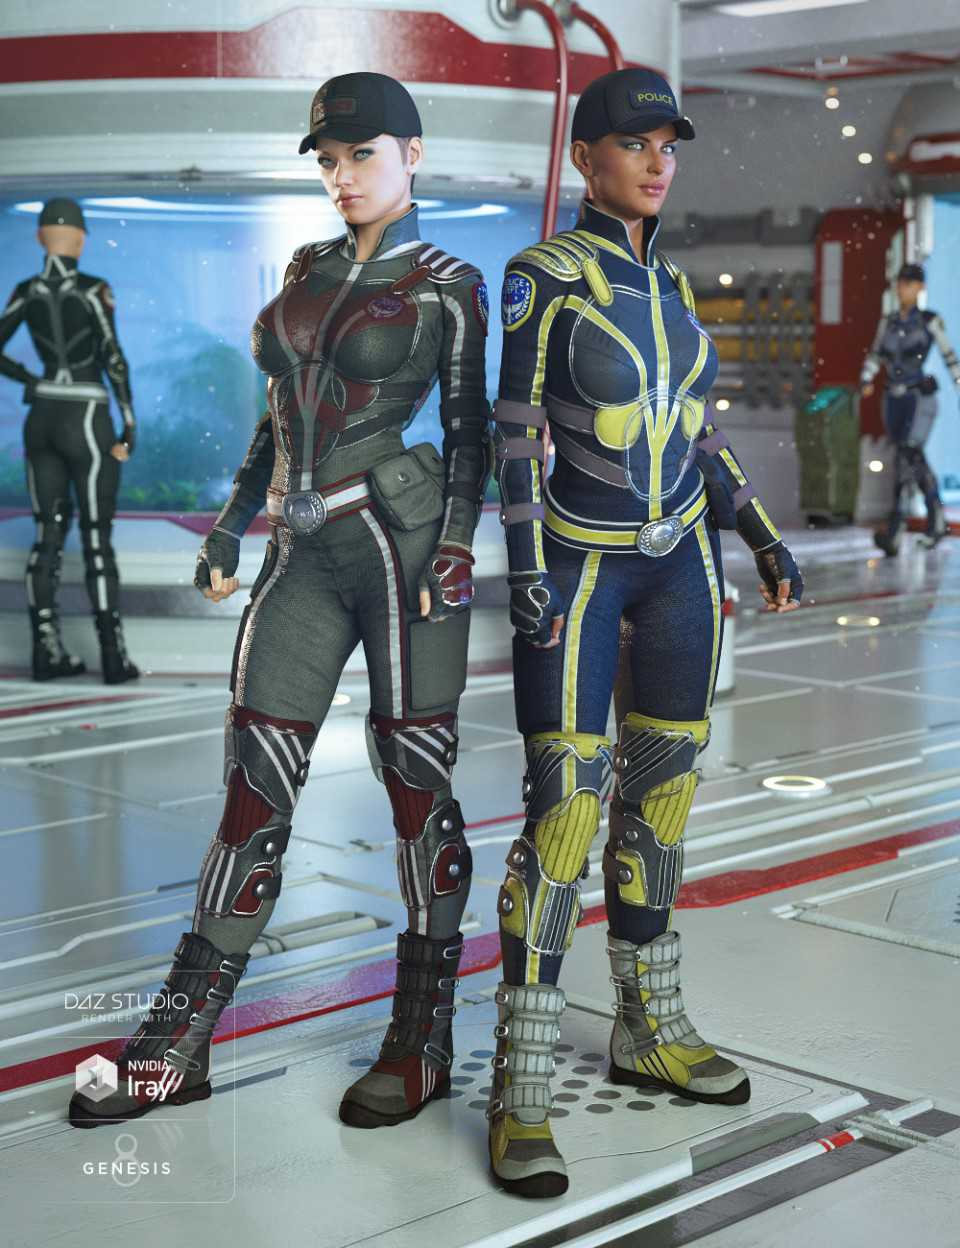 Sci-fi Police Outfit Textures